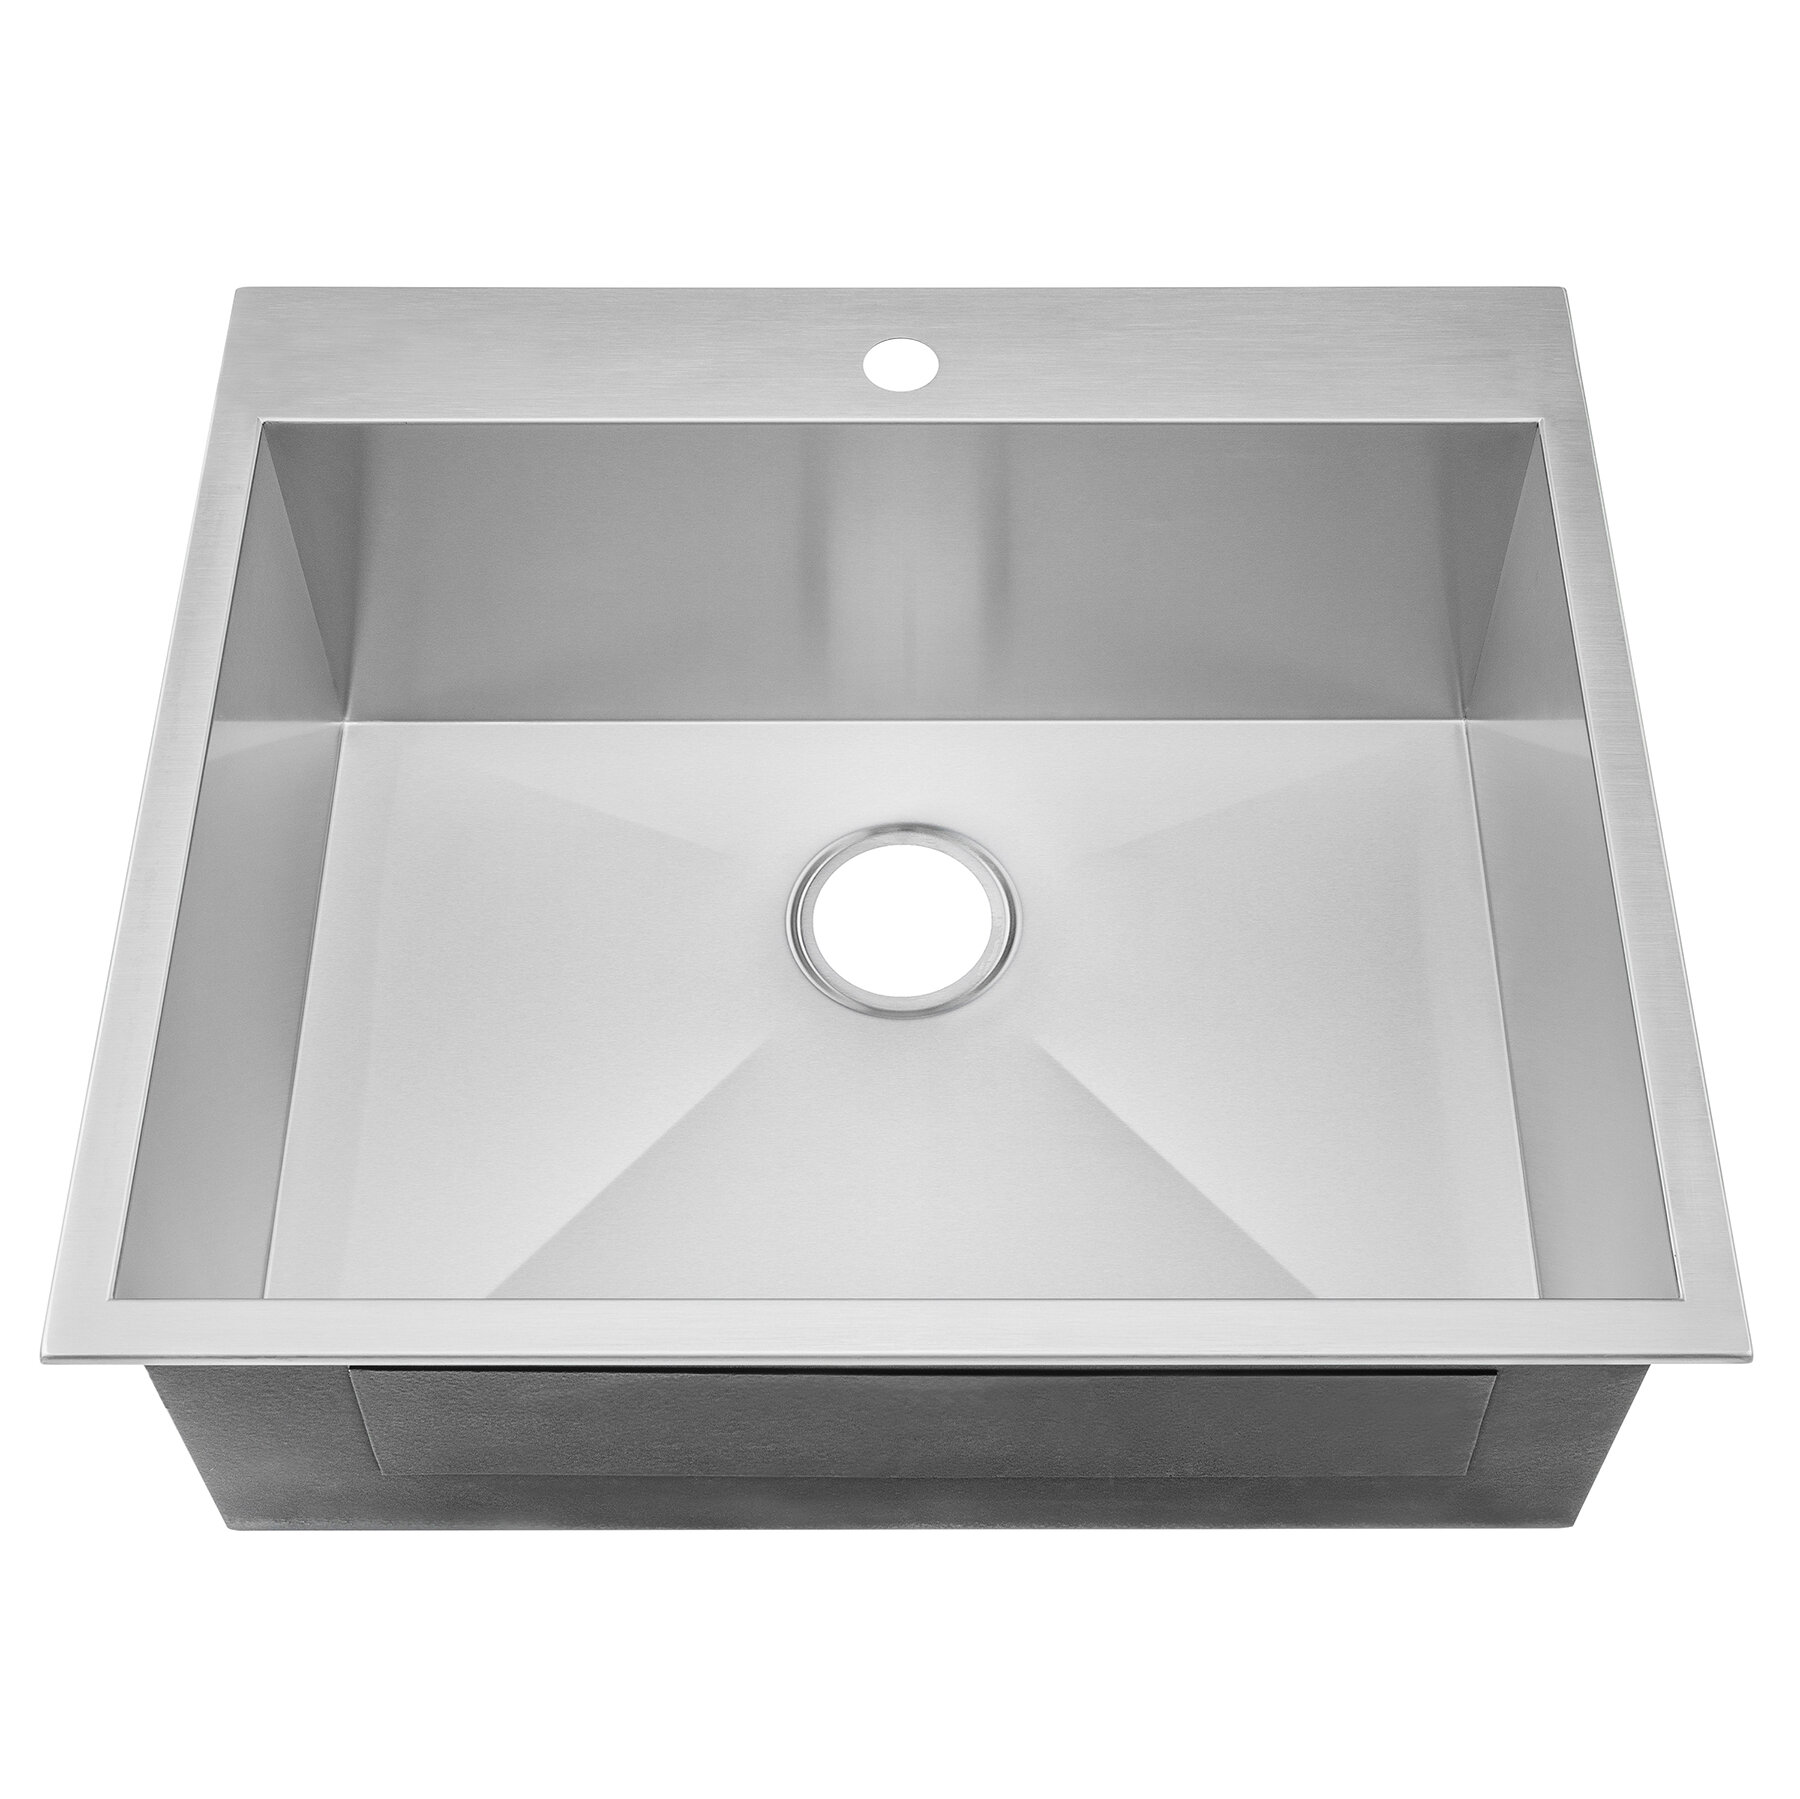 25 x 22 drop in kitchen sink reviews joss main rh jossandmain com 25 x 22 undermount kitchen sink 25 x 22 inch kitchen sink